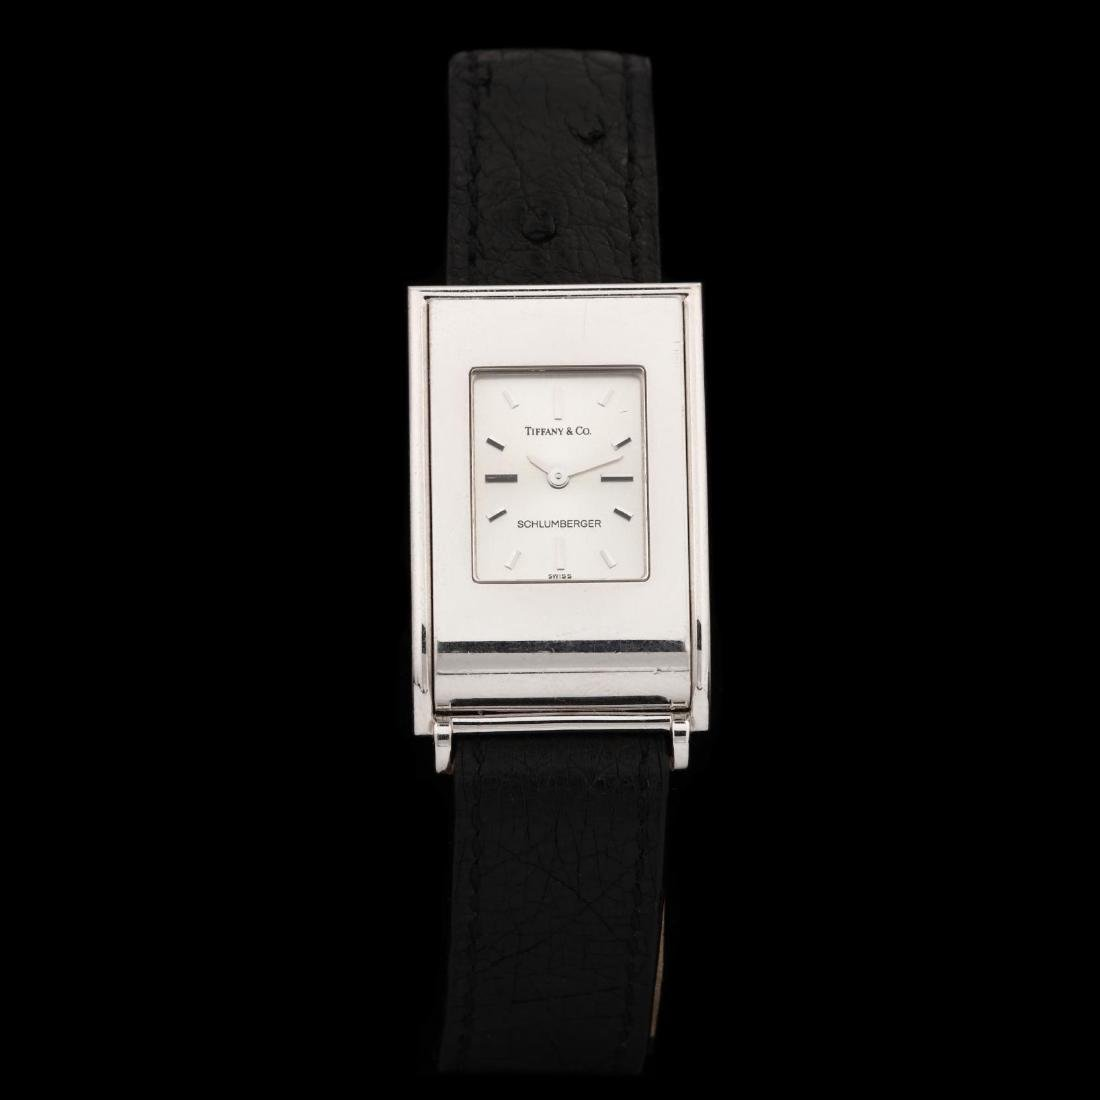 18KT White Gold Watch, Tiffany & Co. / Schlumberger